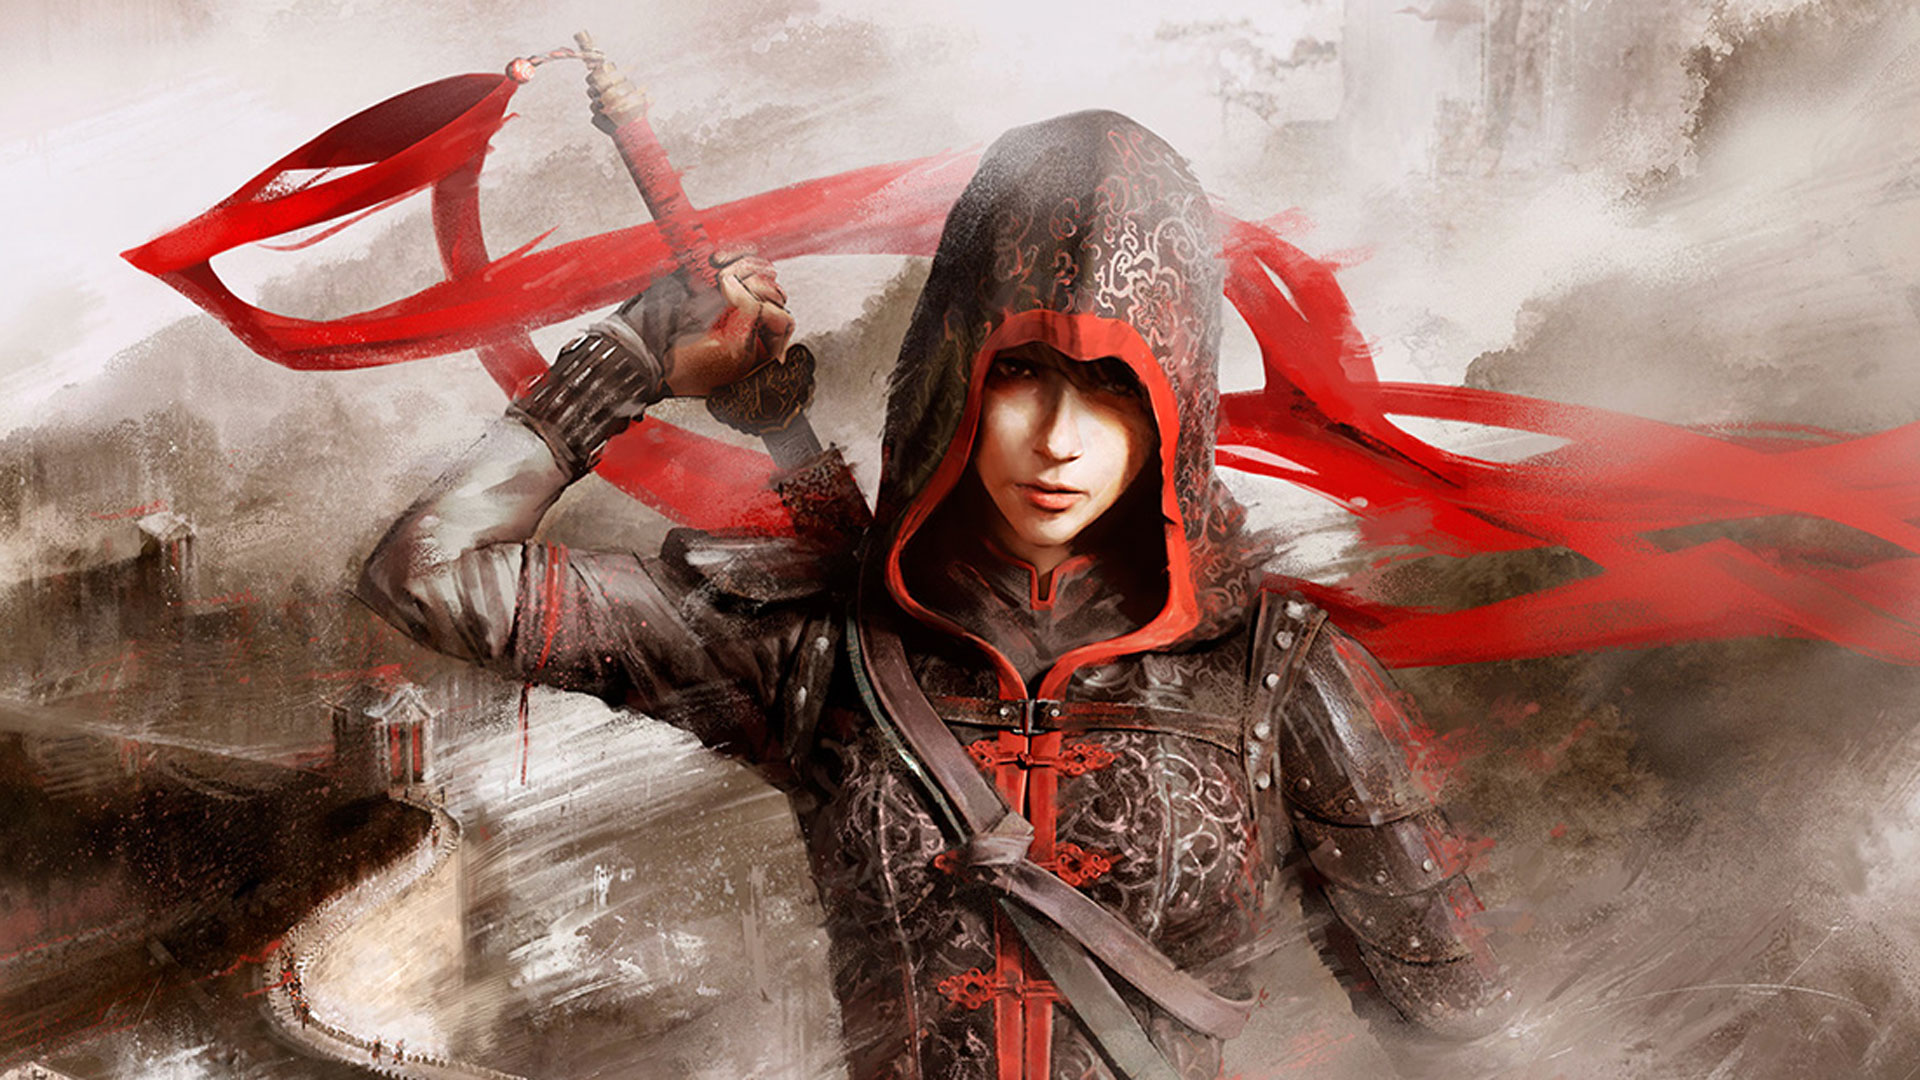 Ny dame i «Assassin's Creed»